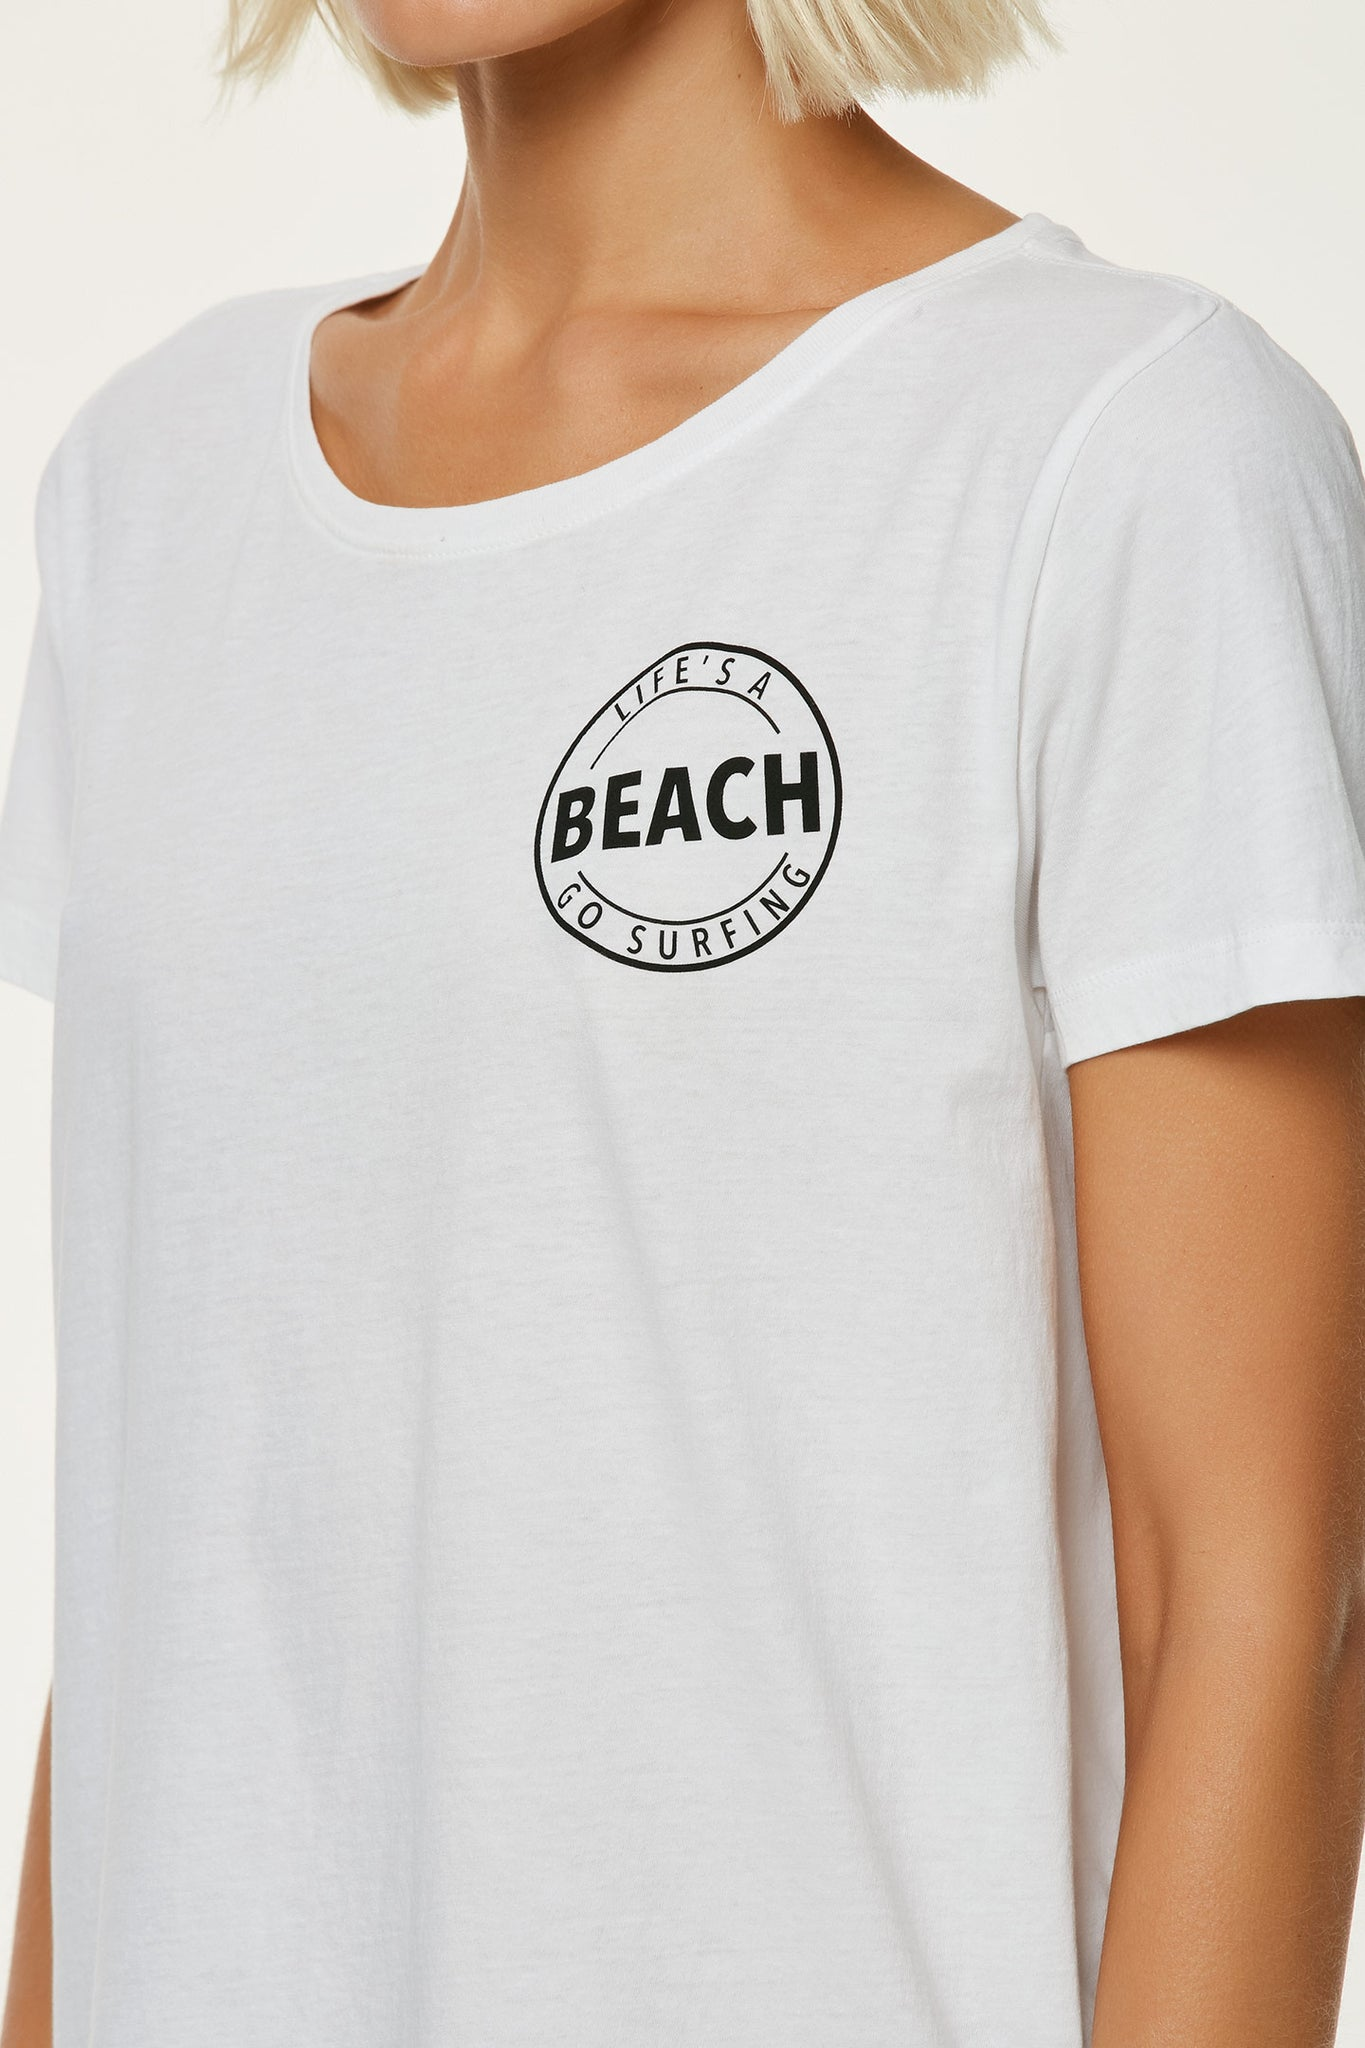 Beach Club Tee | O'Neill Clothing USA